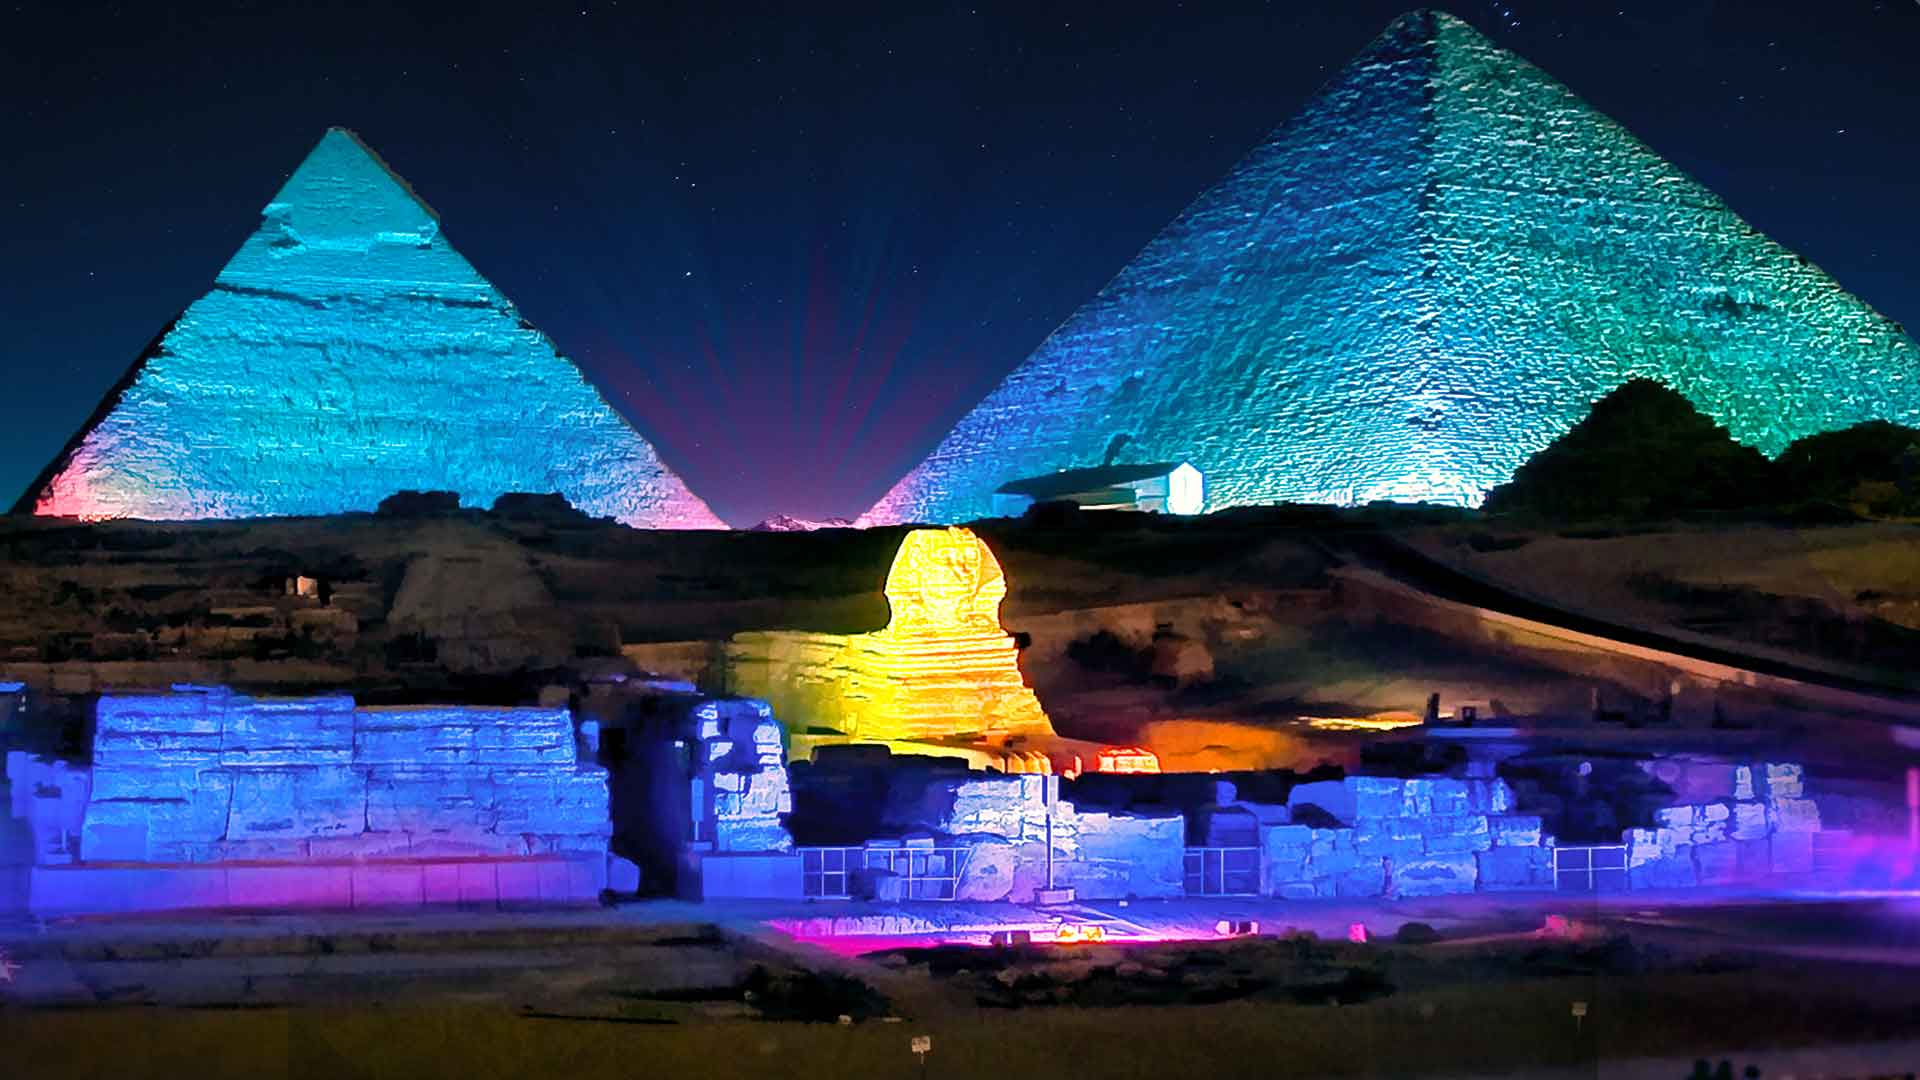 Sound & Light show in the Pyramids area.